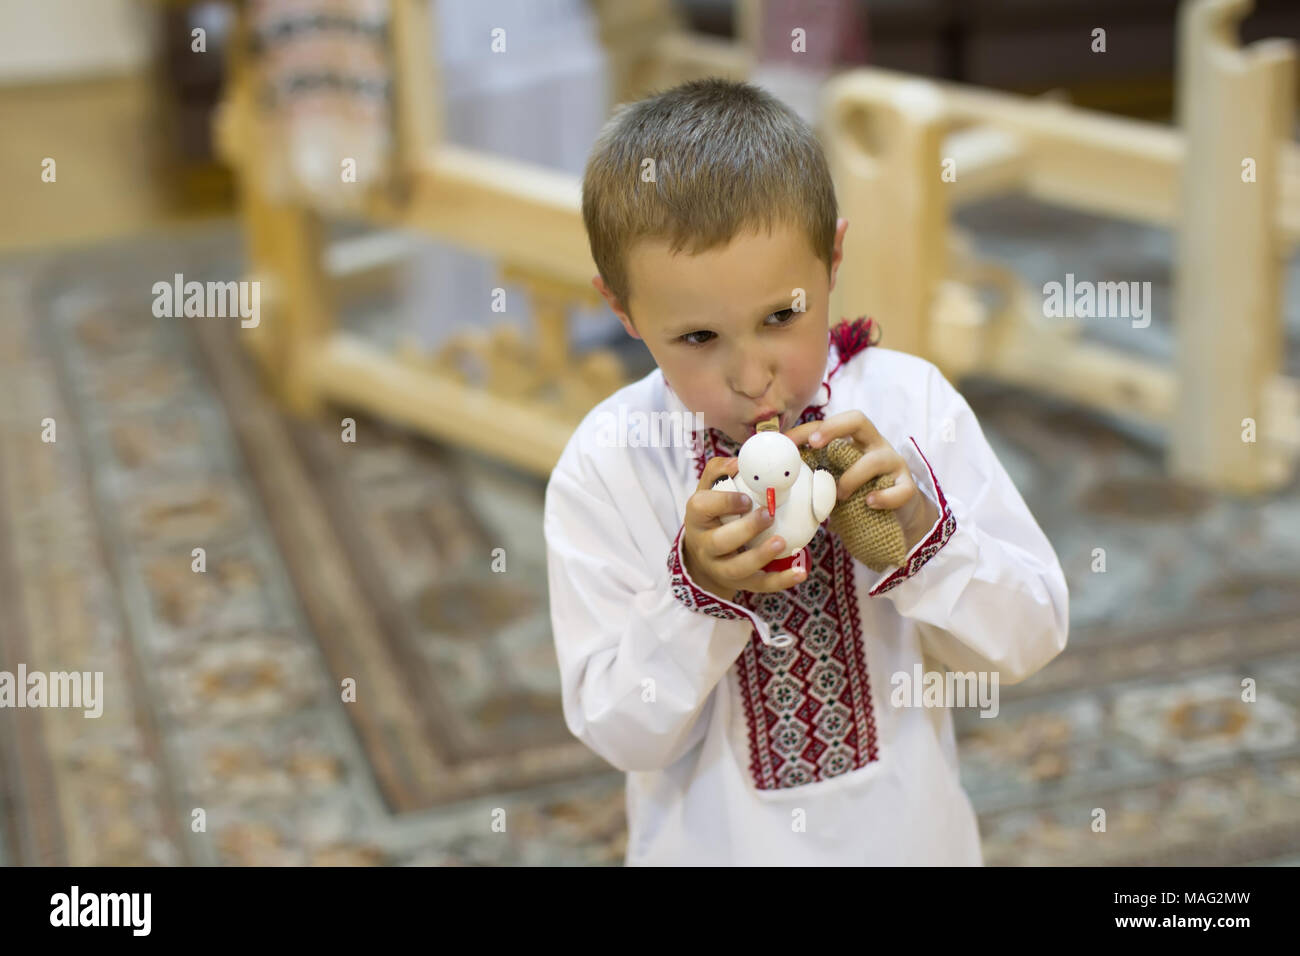 The Belarusian boy. Belarusian boy in national clothes with a toy clay cockerel. Children's ethnic ancient Slavic toys.A boy with a toy whistle - Stock Image